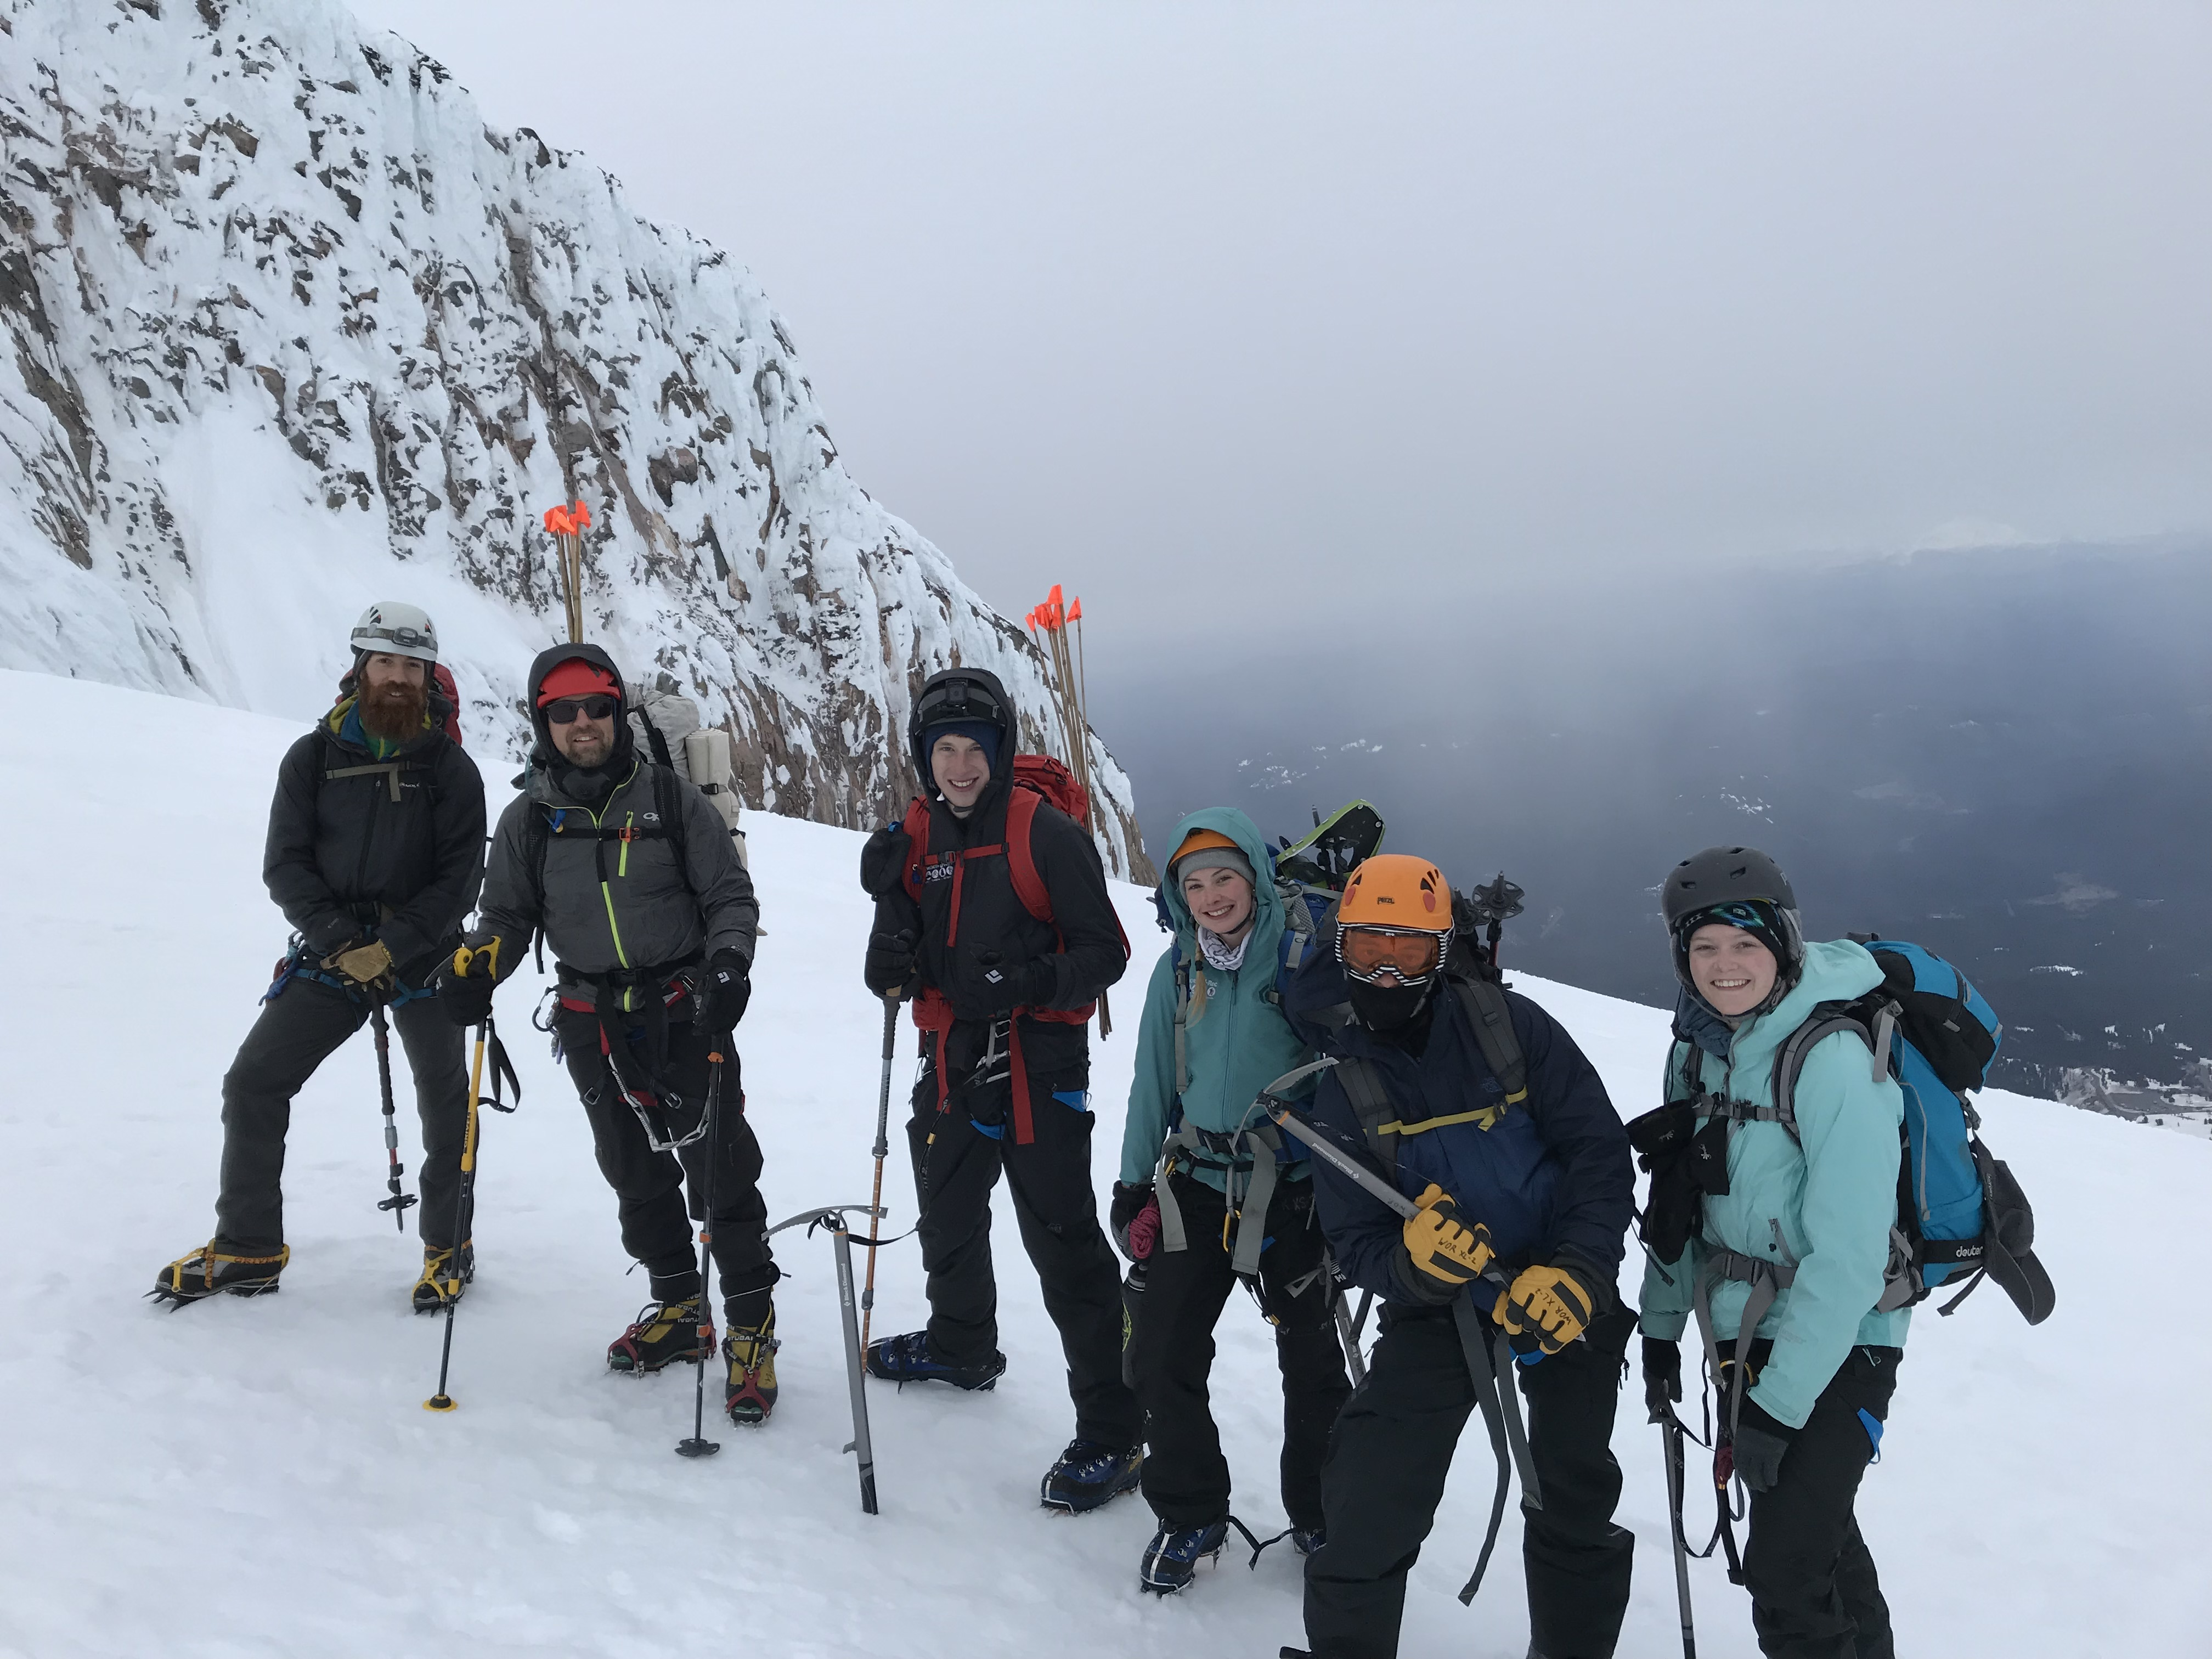 Mt. Hood Jan Term class!